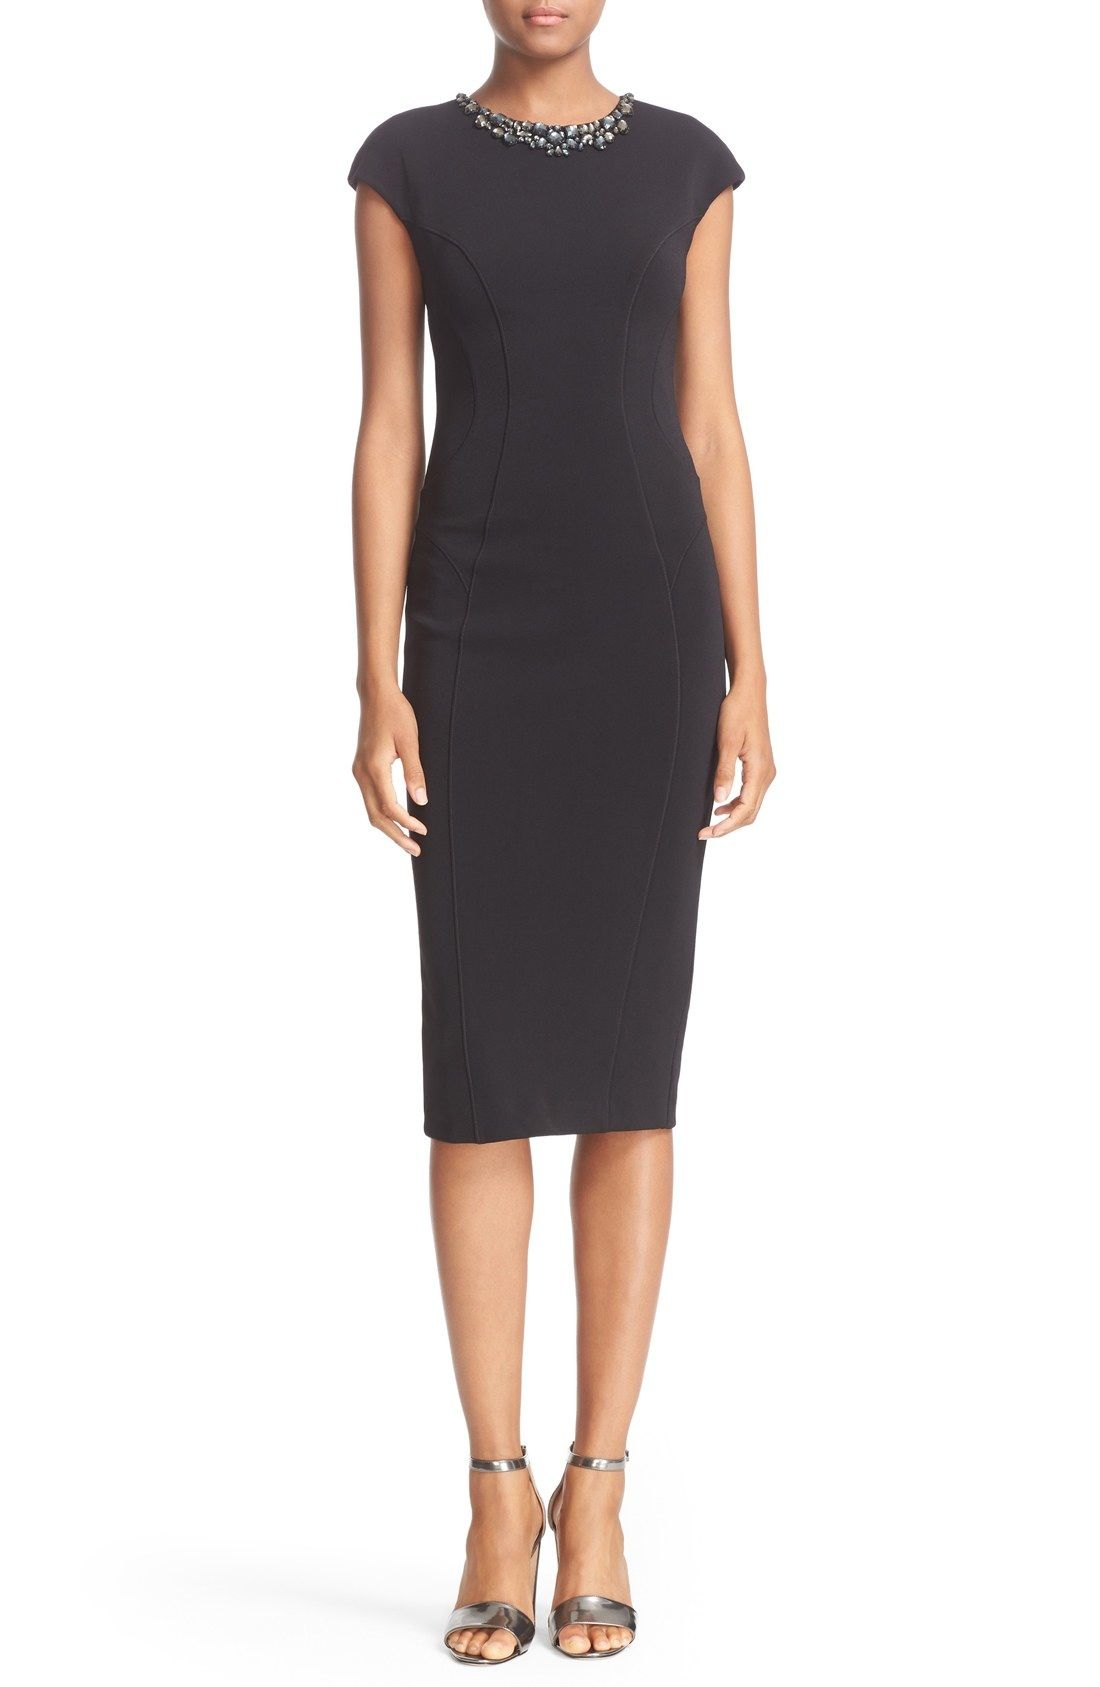 858b26fd1 TED BAKER Dardee Embellished Bodycon Dress.  tedbaker  cloth